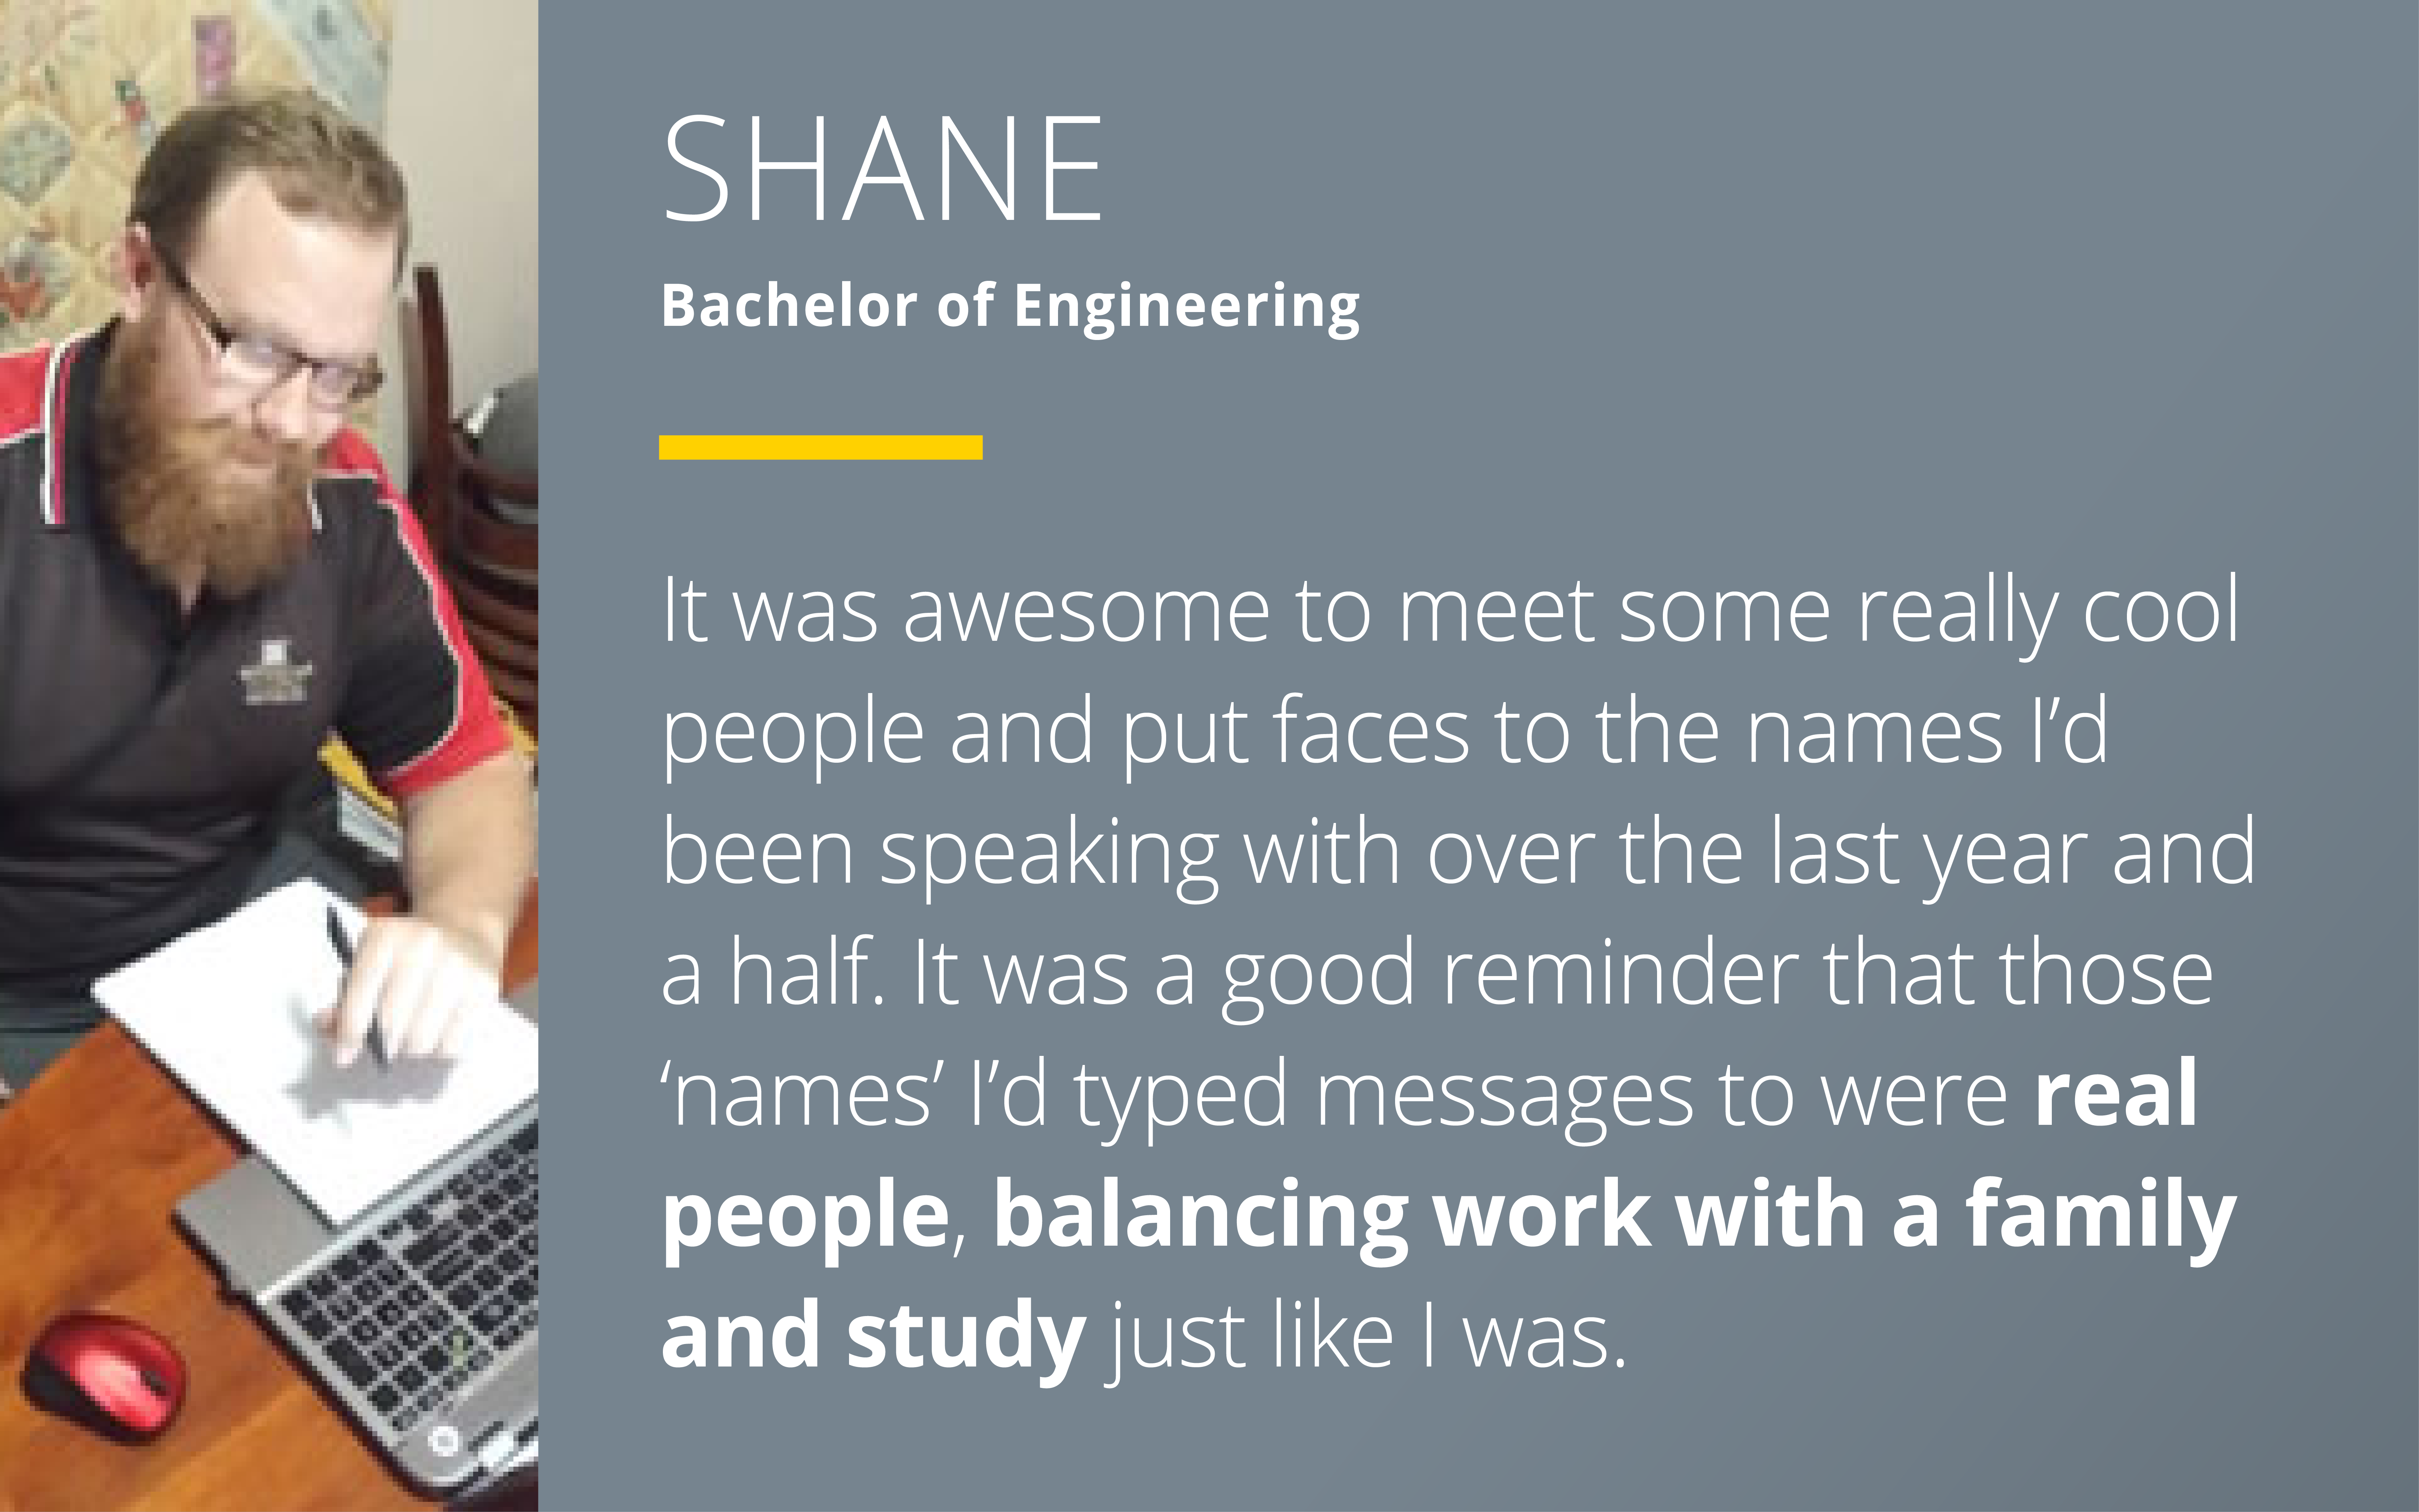 "Shane - Bachelor of Engineering says ""It was awesome to meet some really cool people and put faces to the names I'd been speaking with over the last year and a half. It was a good reminder that those 'names' I'd typed messages to were real people, balancing work with a family and study just like I was."""